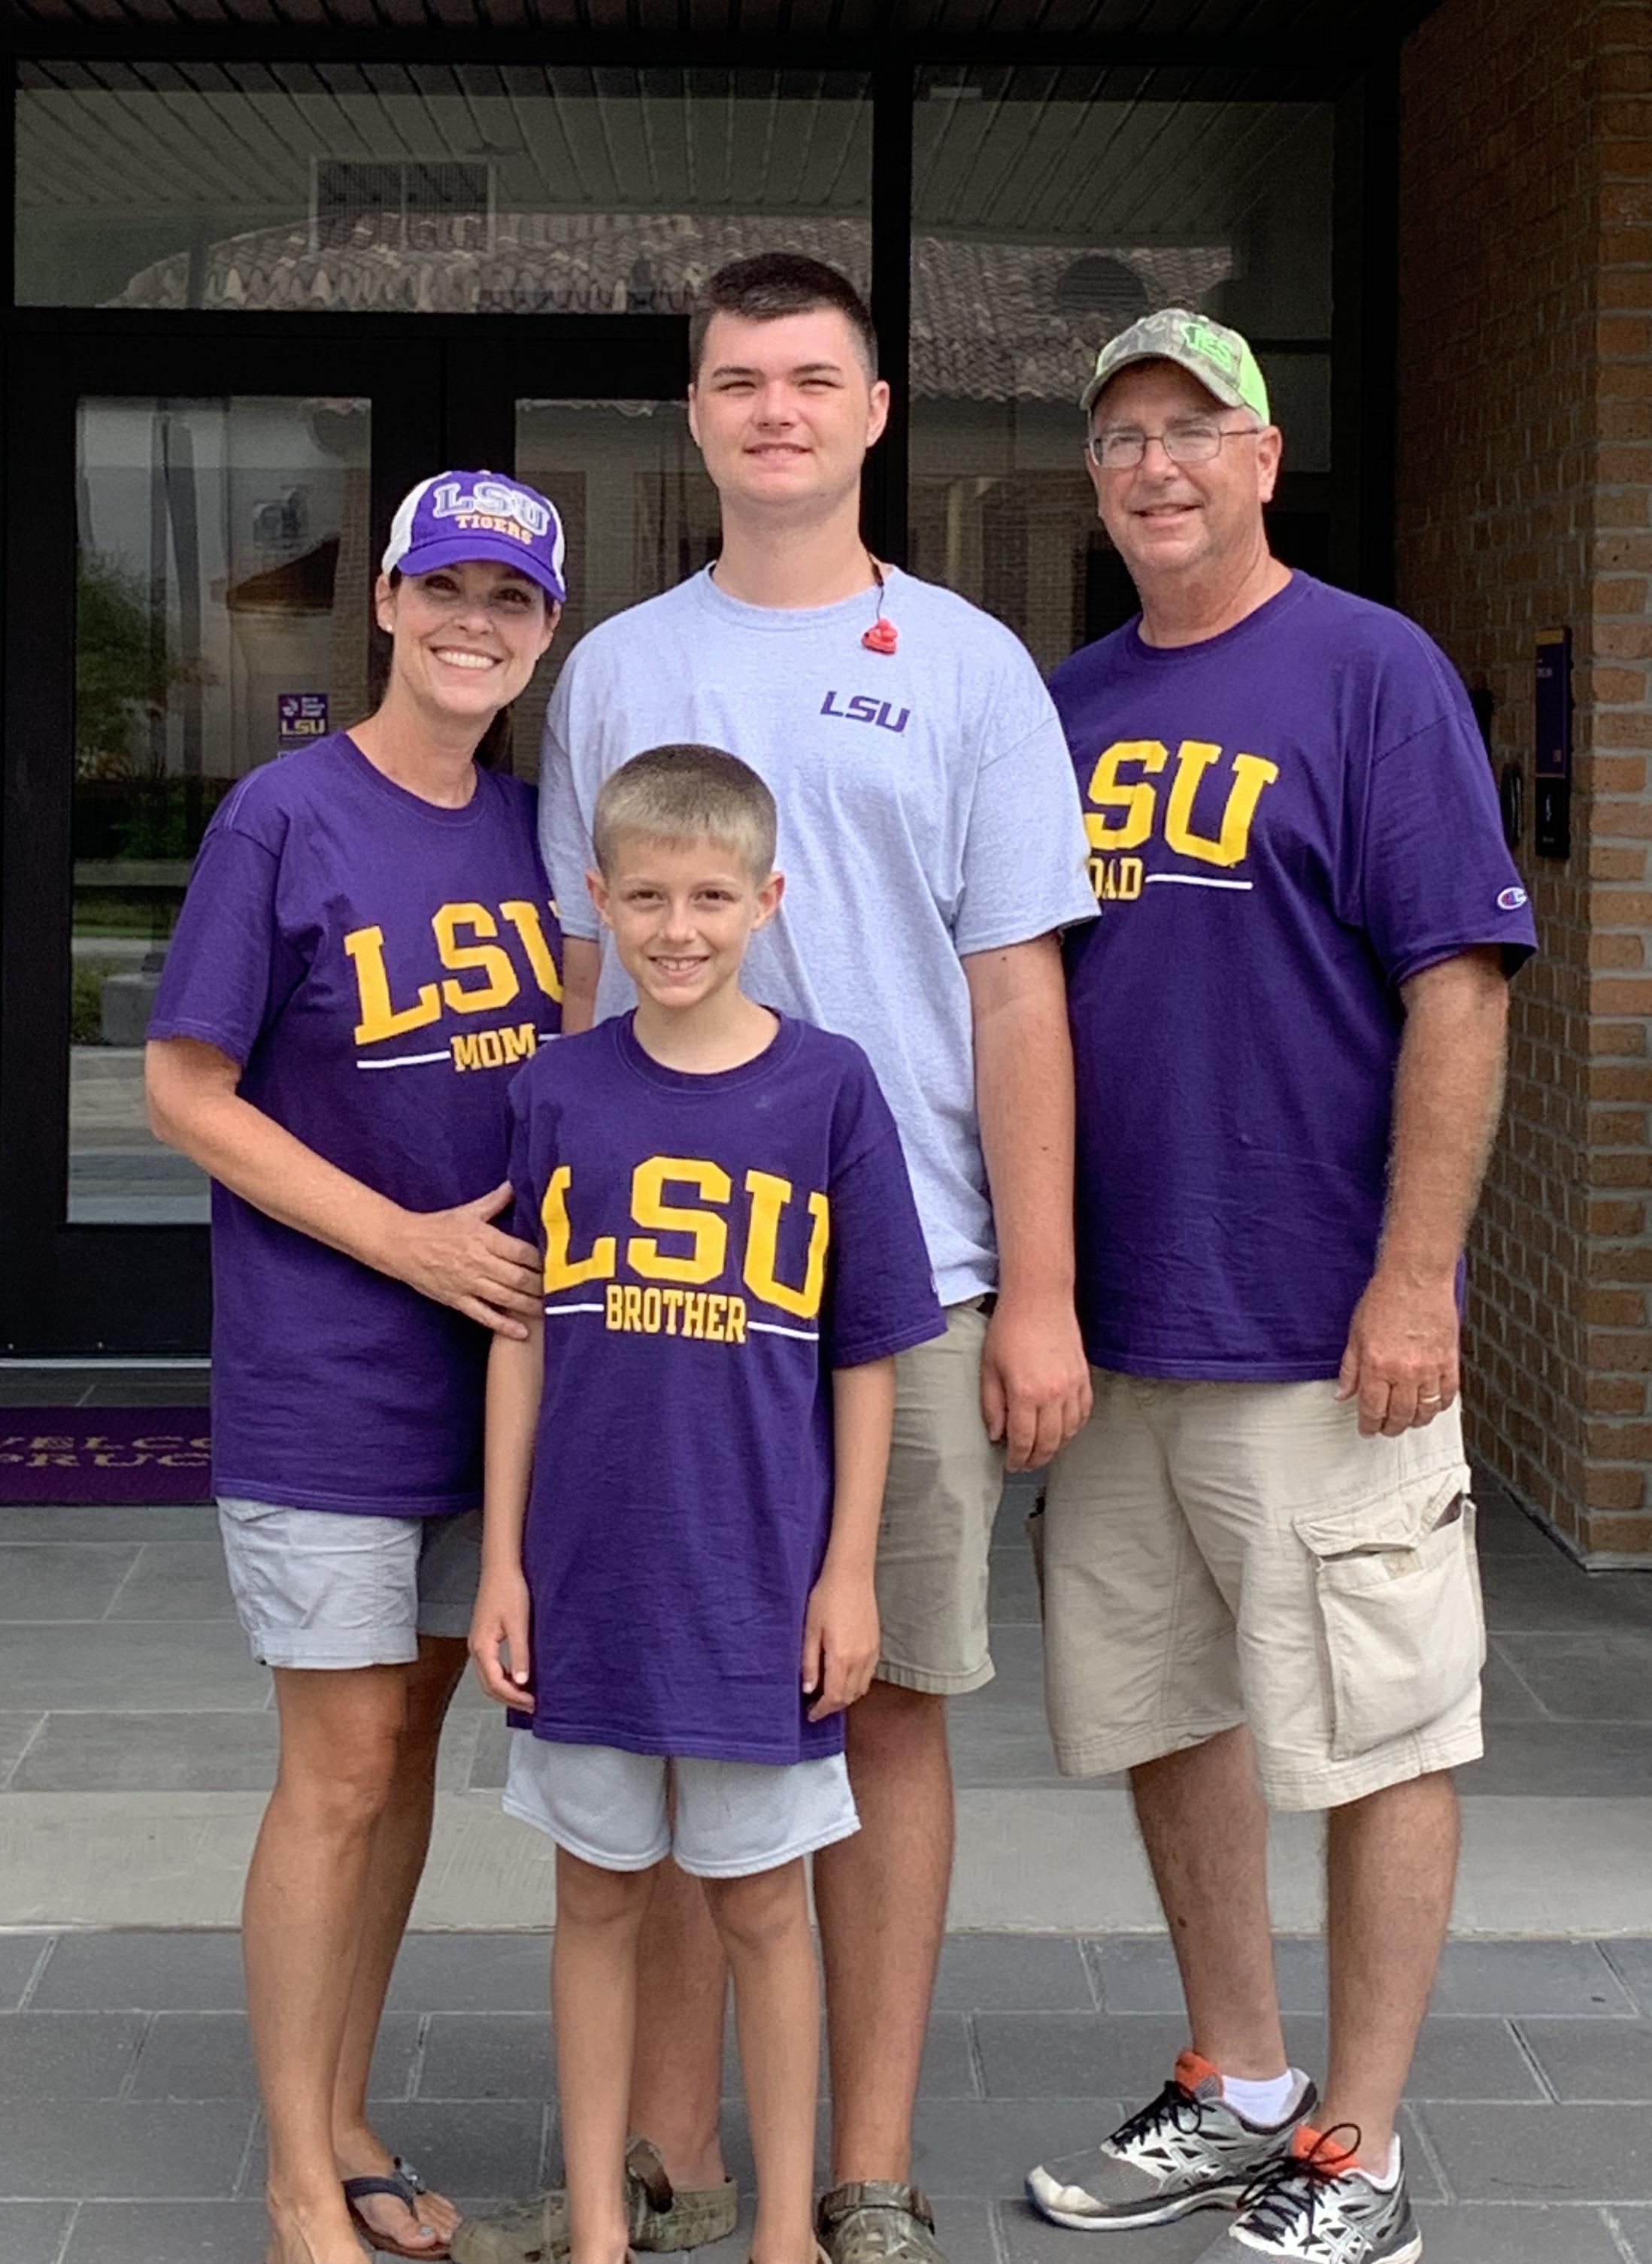 Visiting our LSU Tiger!